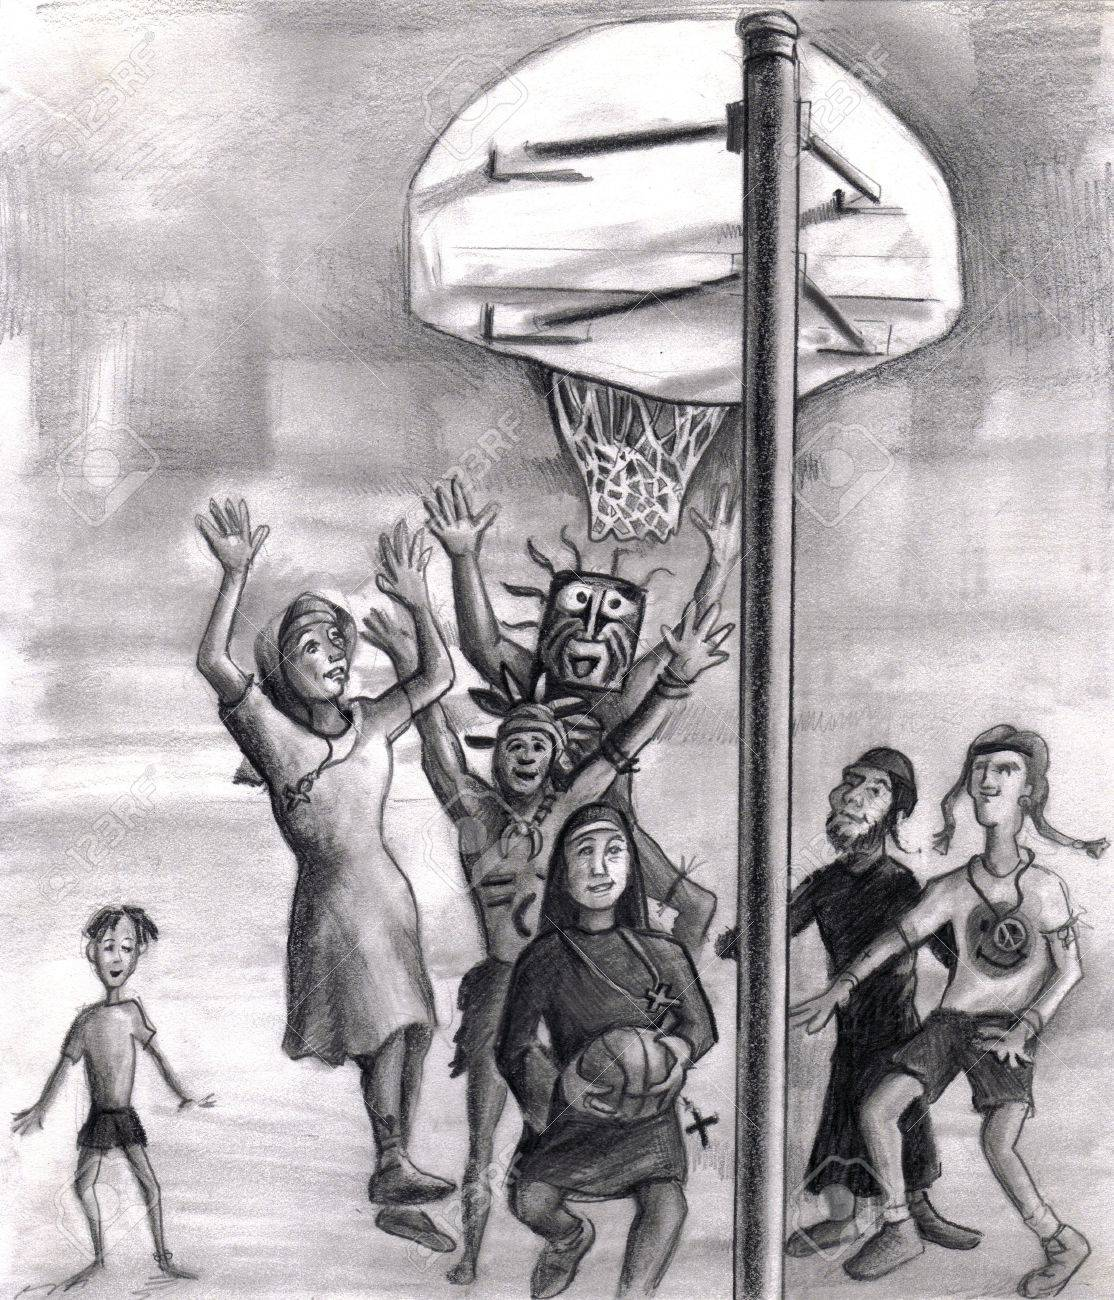 Diversity and faith based outdoor basketball game illustration. We see playing basketball a man wearing a rectangle tribal mask, a second tribe man, and a white nun type clothes missionary all have their hands in the air trying to block the shot. The shoo Stock Illustration - 7290611